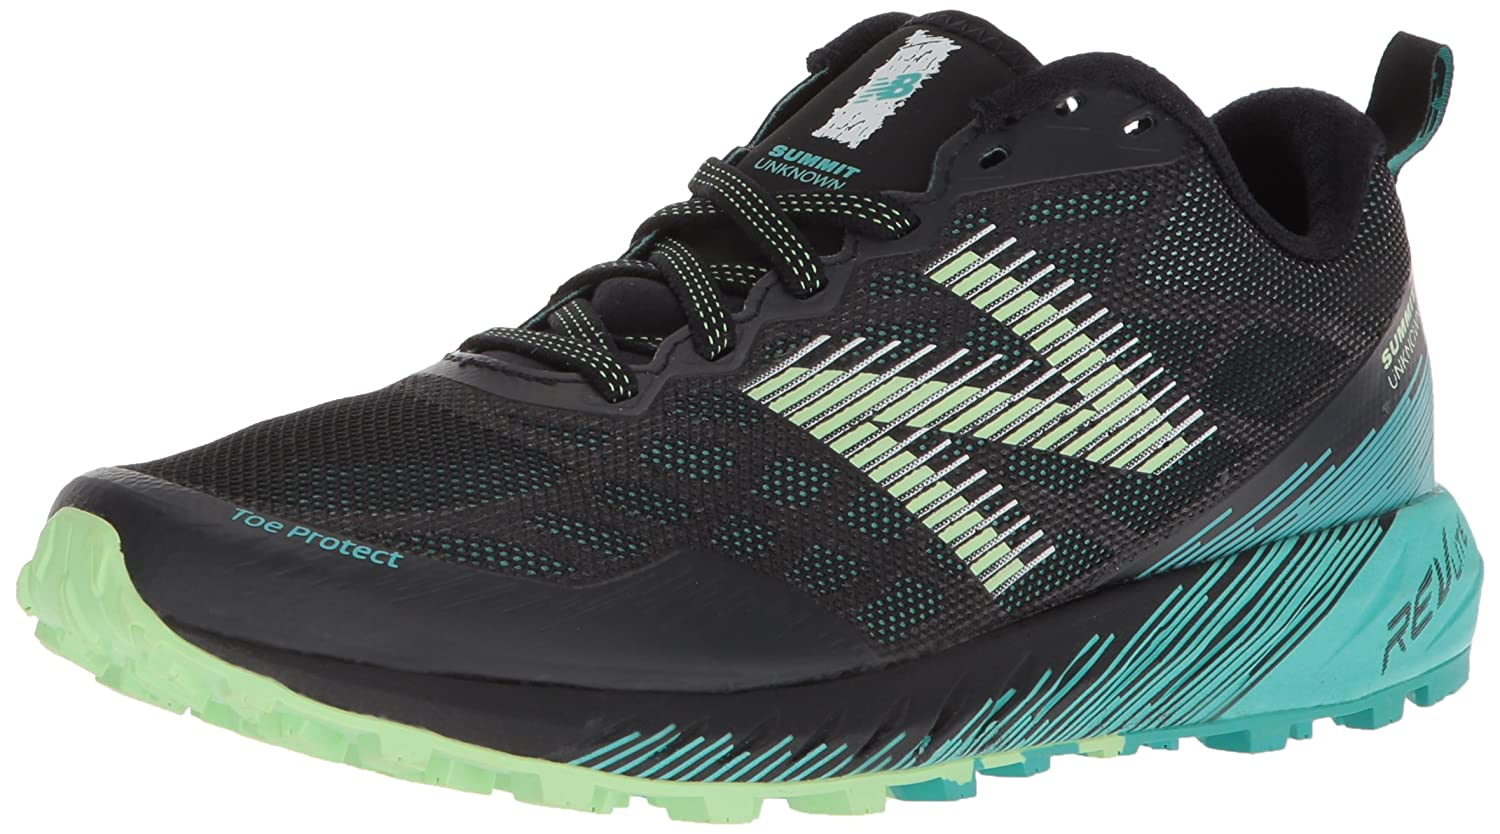 New Balance Women's Summit Unknown Trail Running Shoe B0751GMG1C 8.5 B(M) US|Green/Black